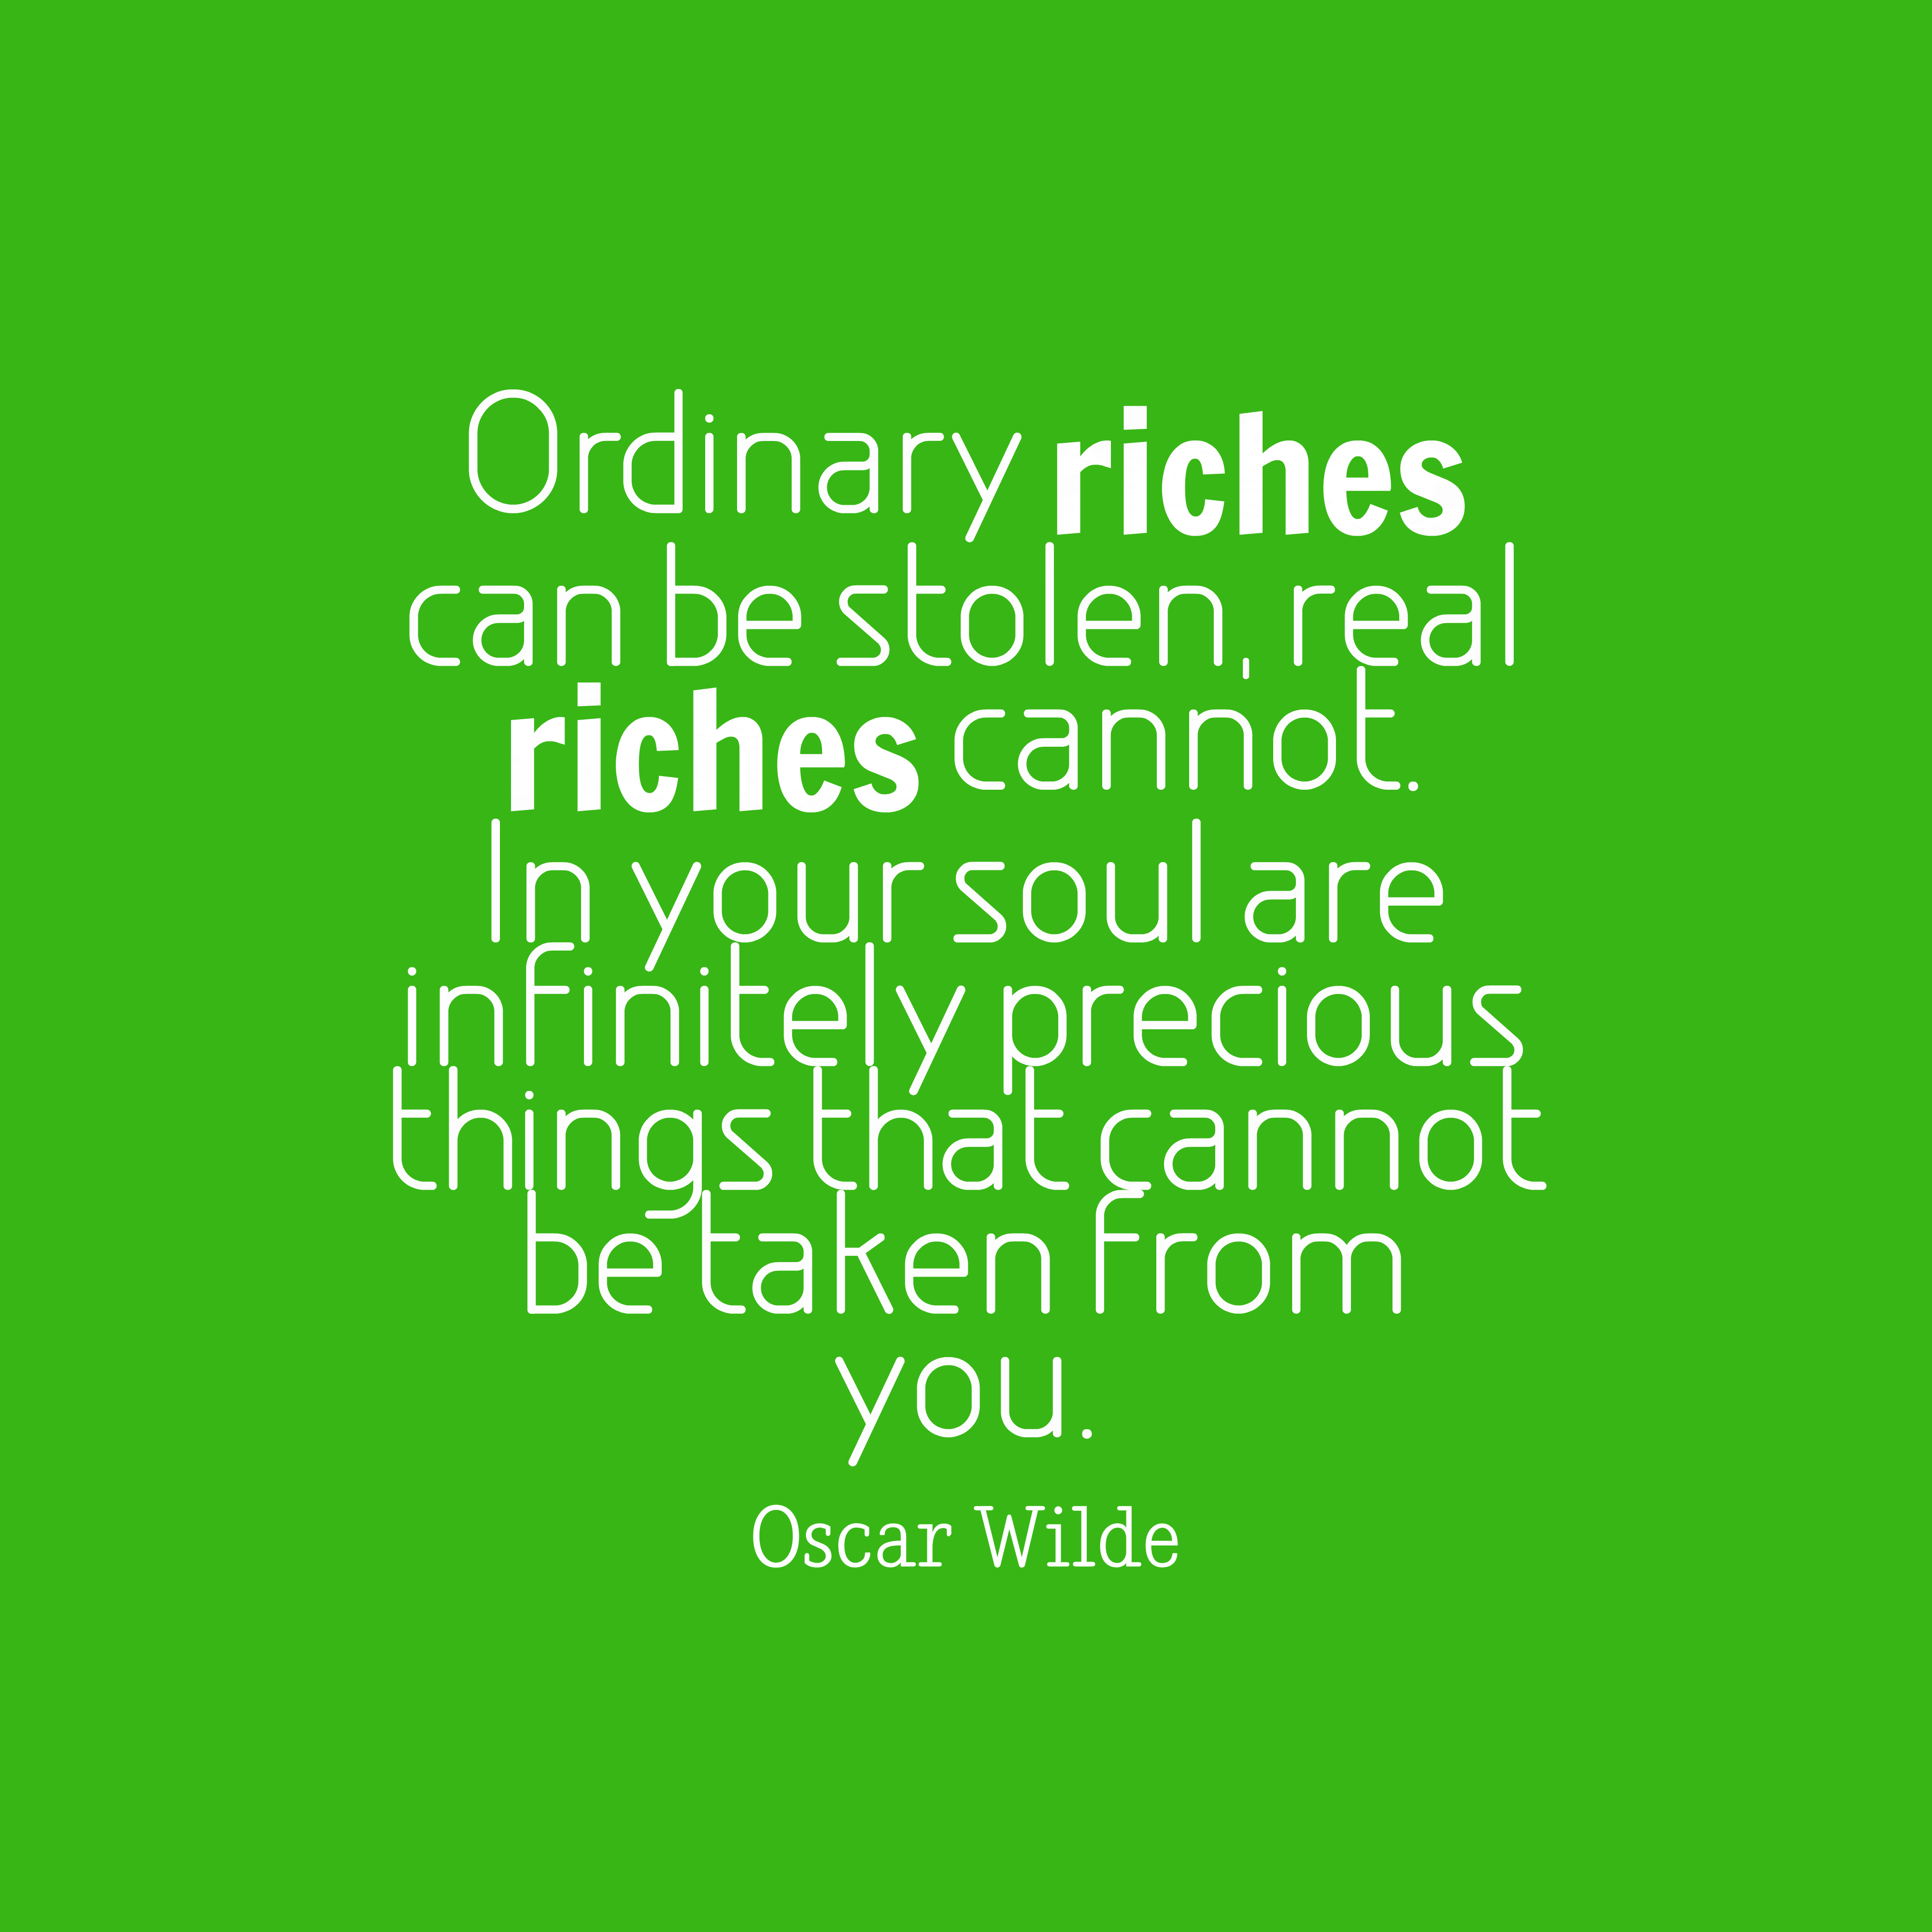 Quotes image of Ordinary riches can be stolen, real riches cannot. In your soul are infinitely precious things that cannot be taken from you.